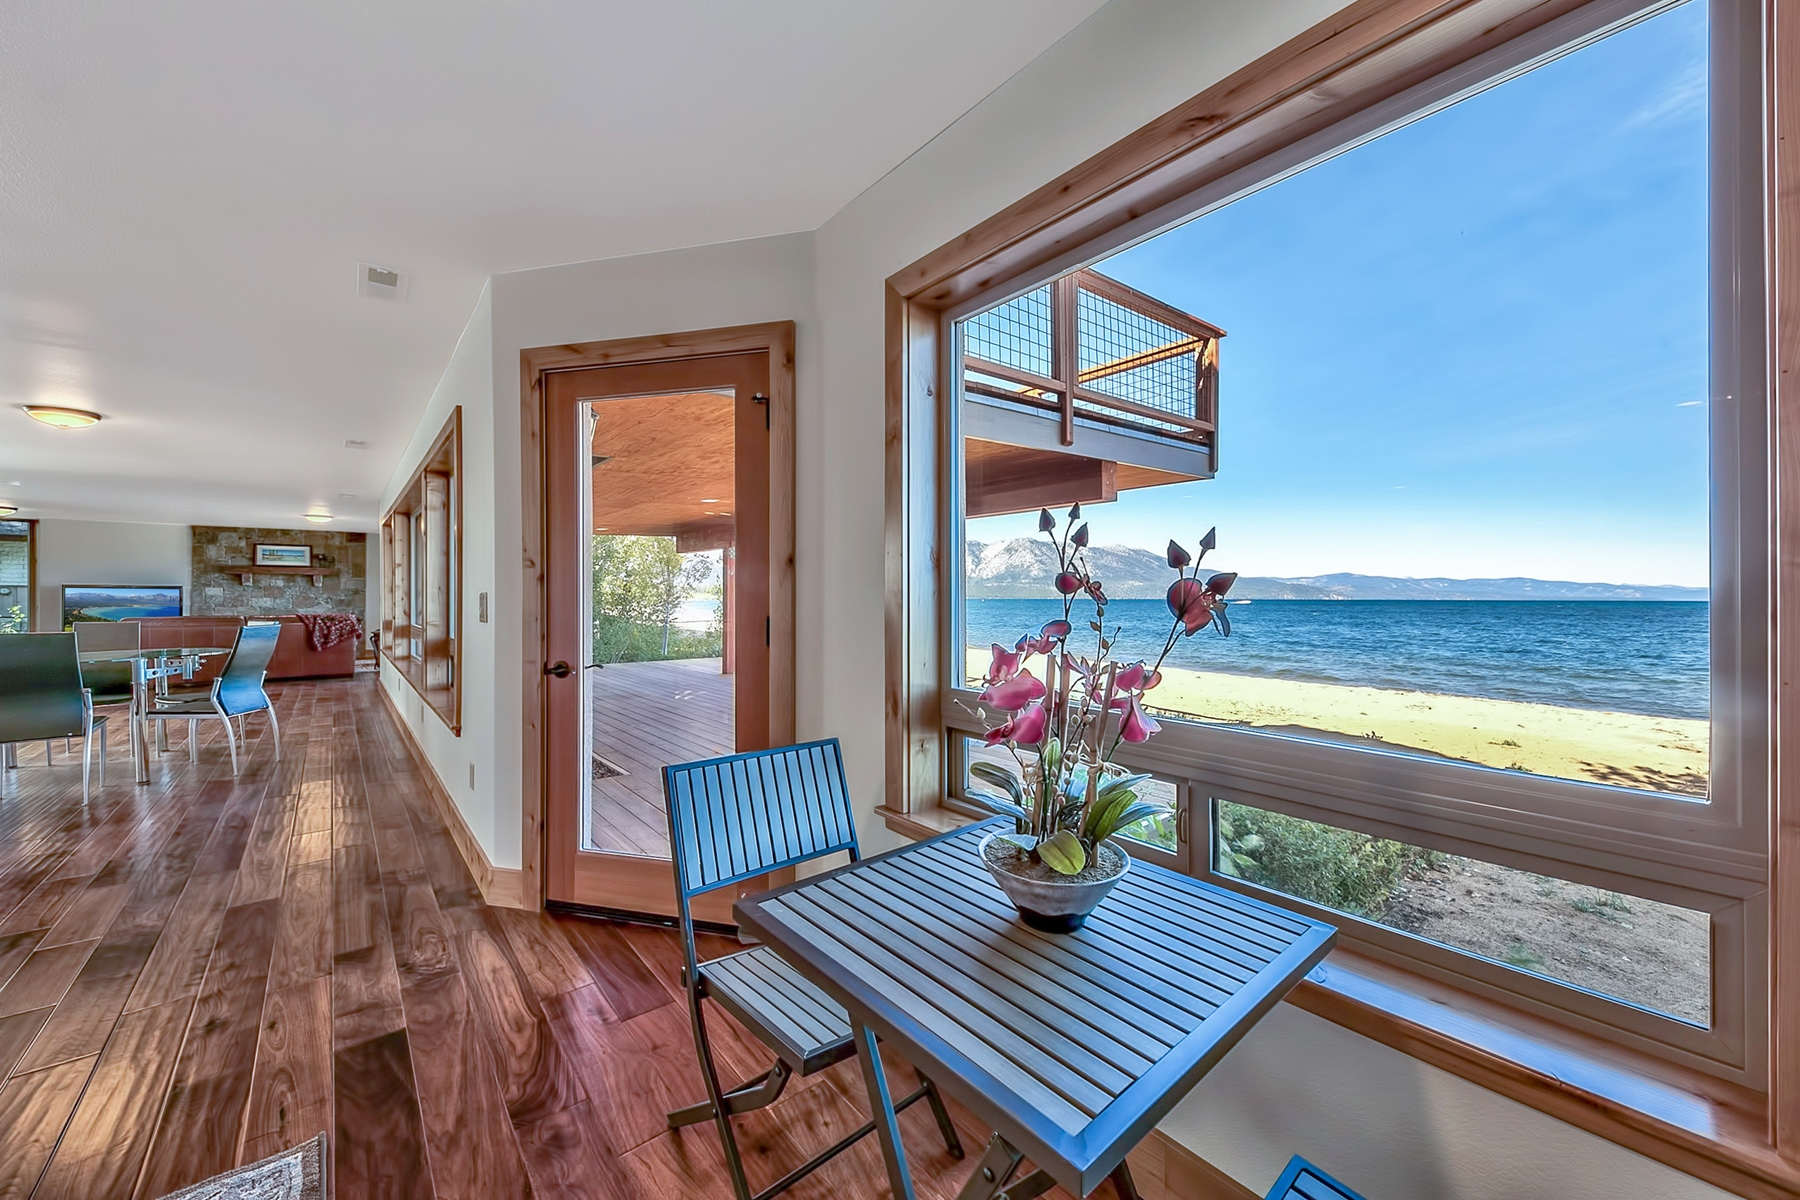 Property for Active at 319 Beach Drive South Lake Tahoe California, 96150 319 Beach Drive South Lake Tahoe, California 96150 United States